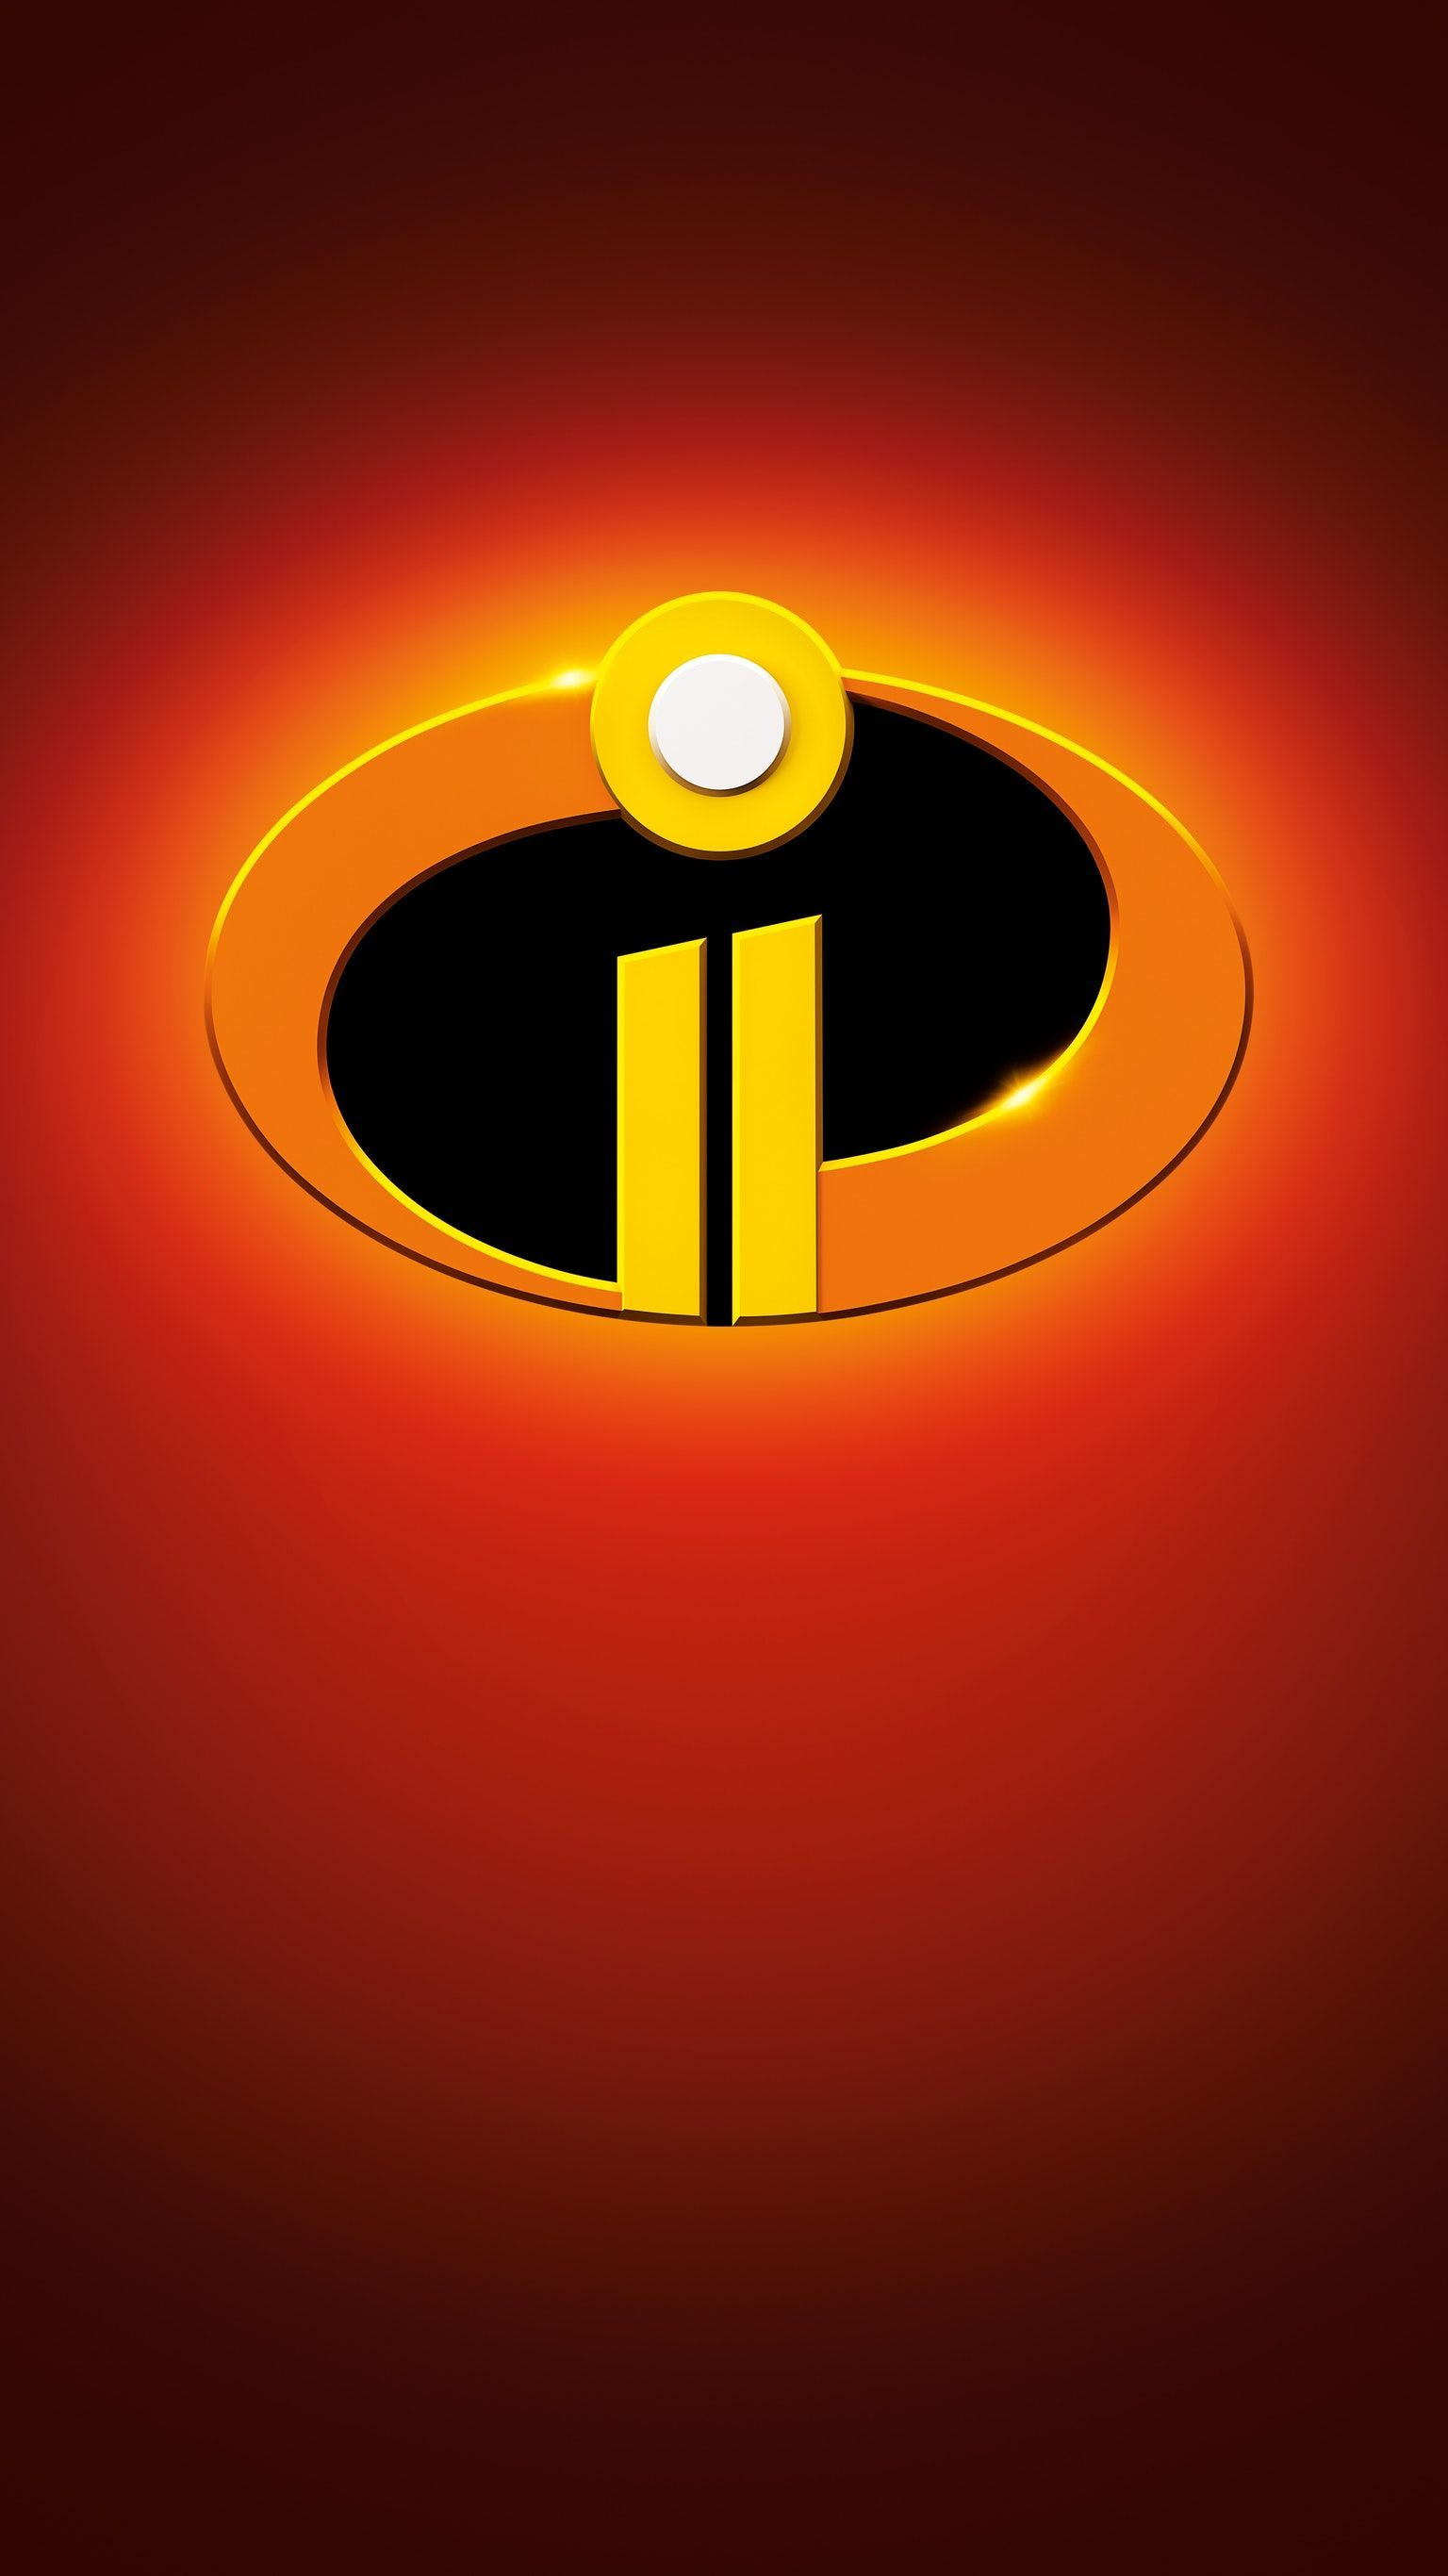 Pin On The Incredibles 2 Posters